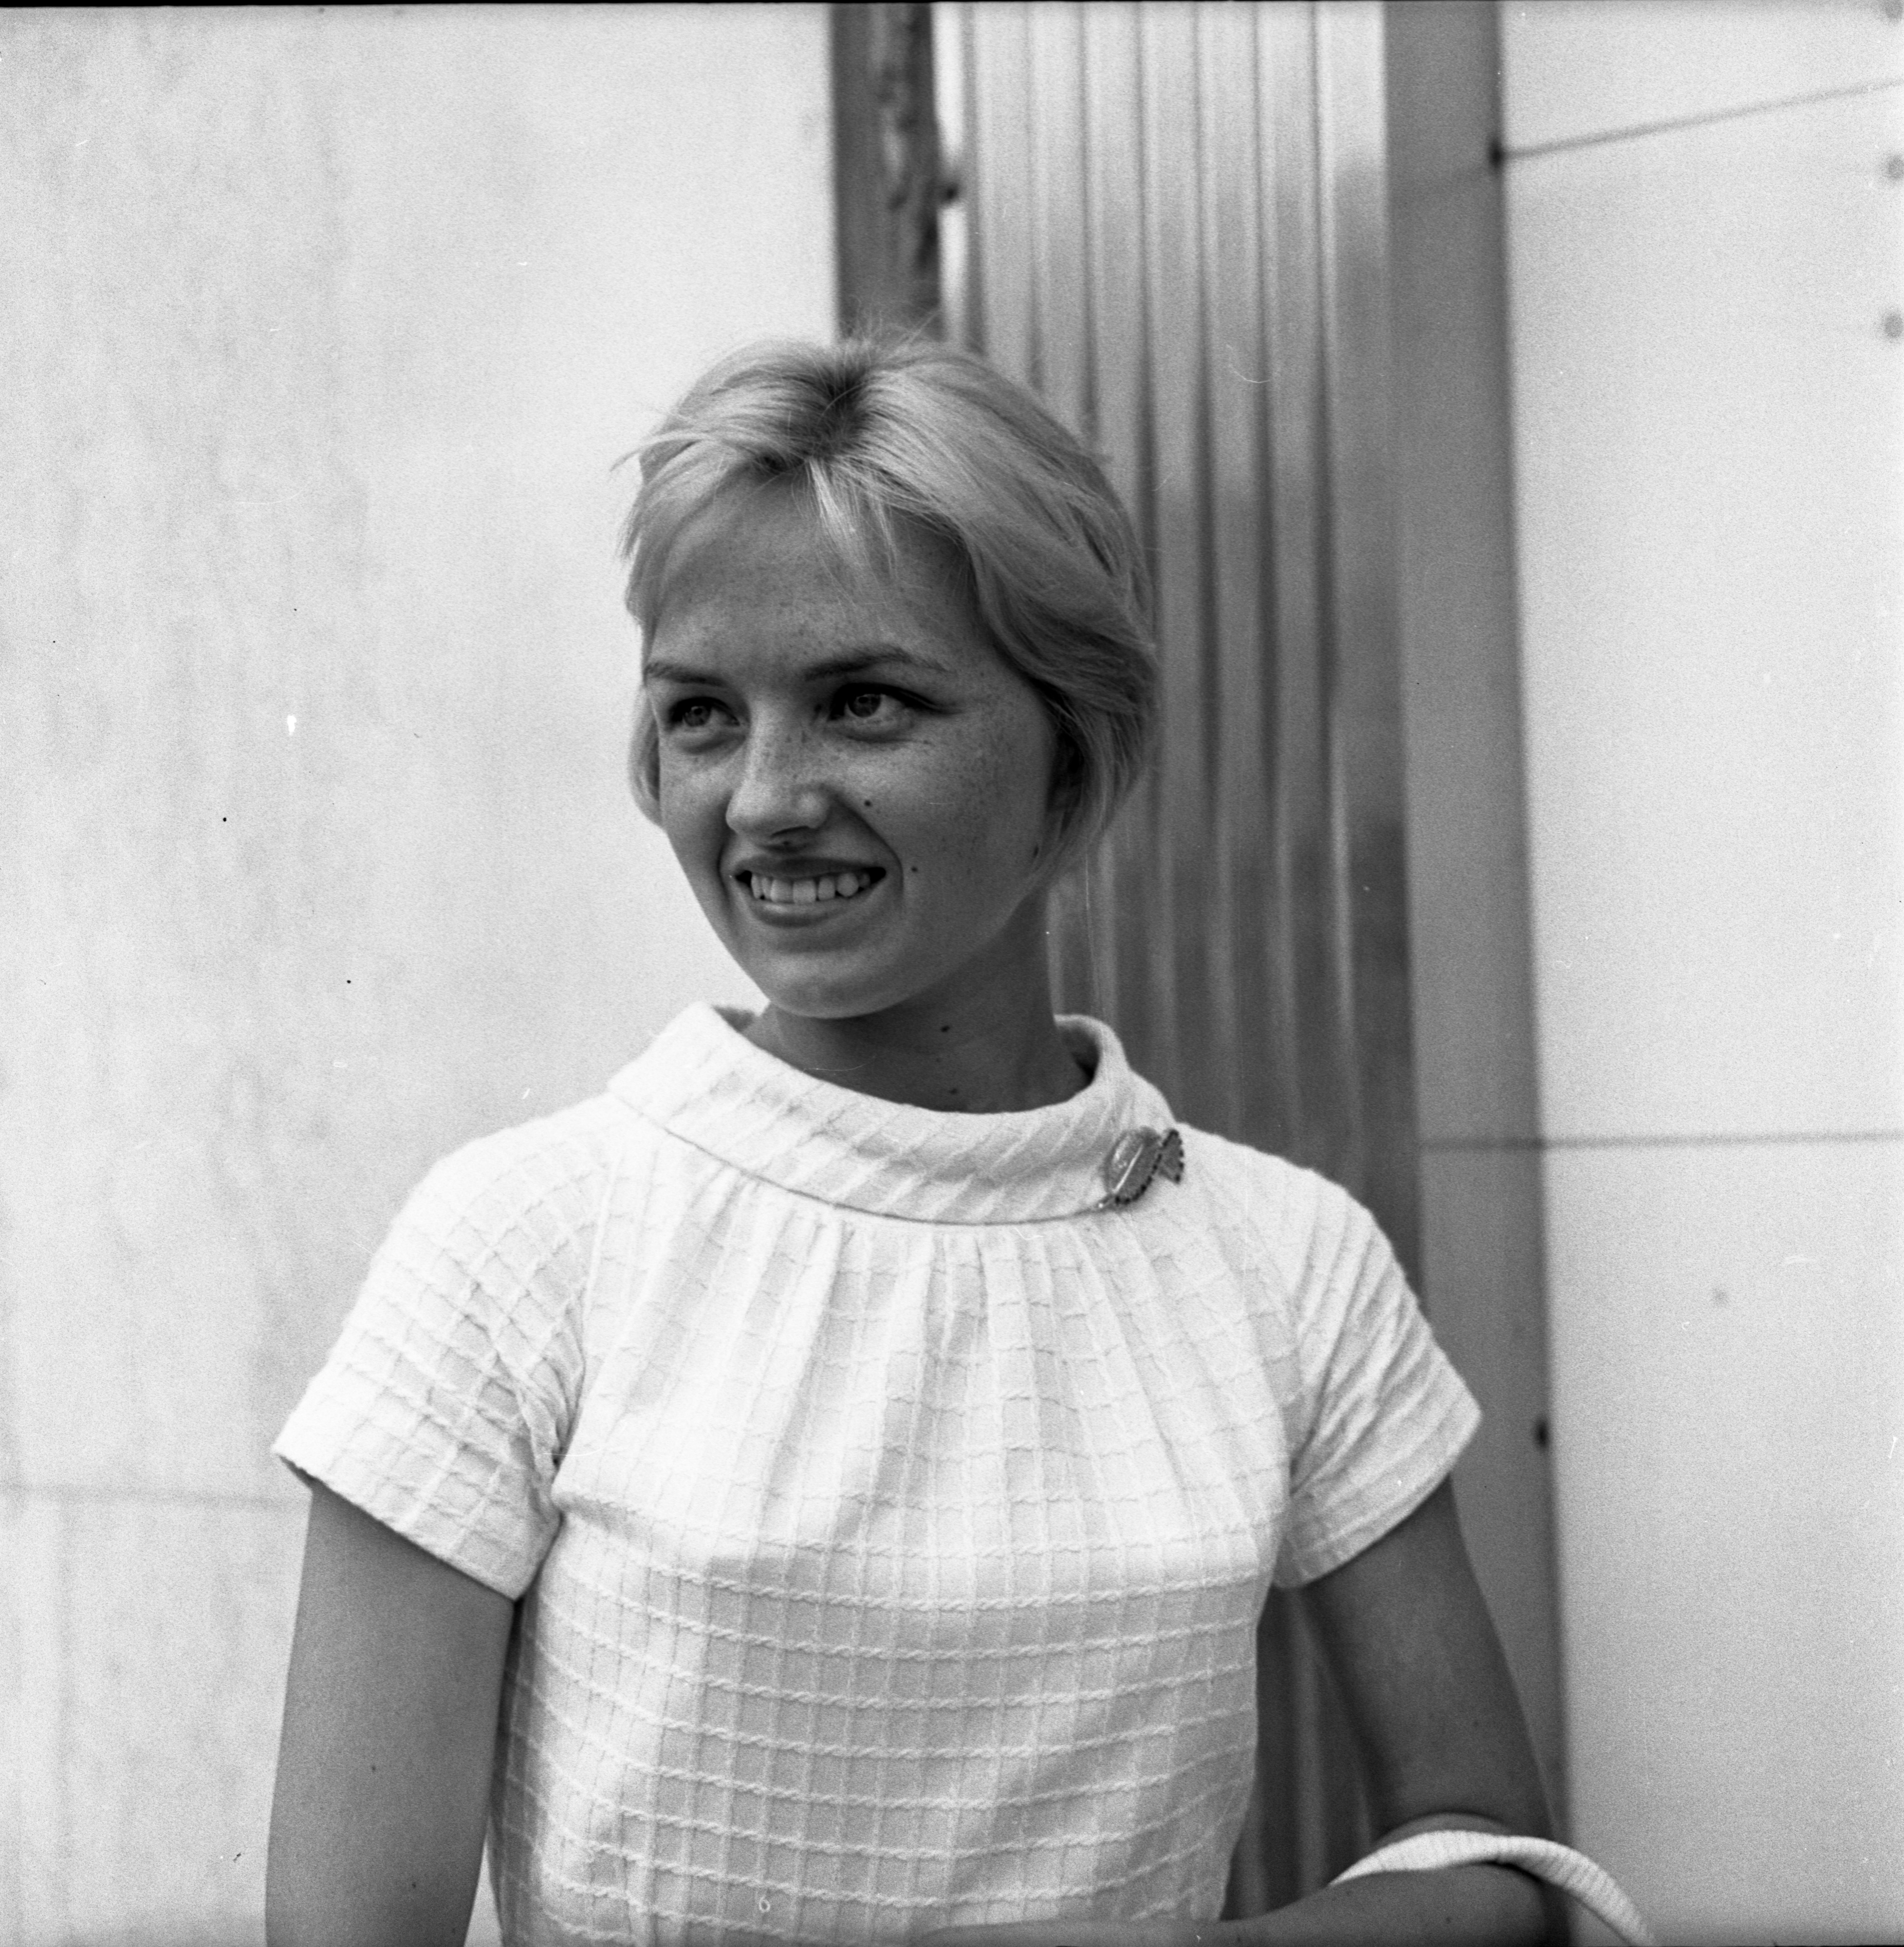 Portrait Of Pamela Bragan For Person On Street Interview About Dealing With Hot Weather, June 29, 1963 image